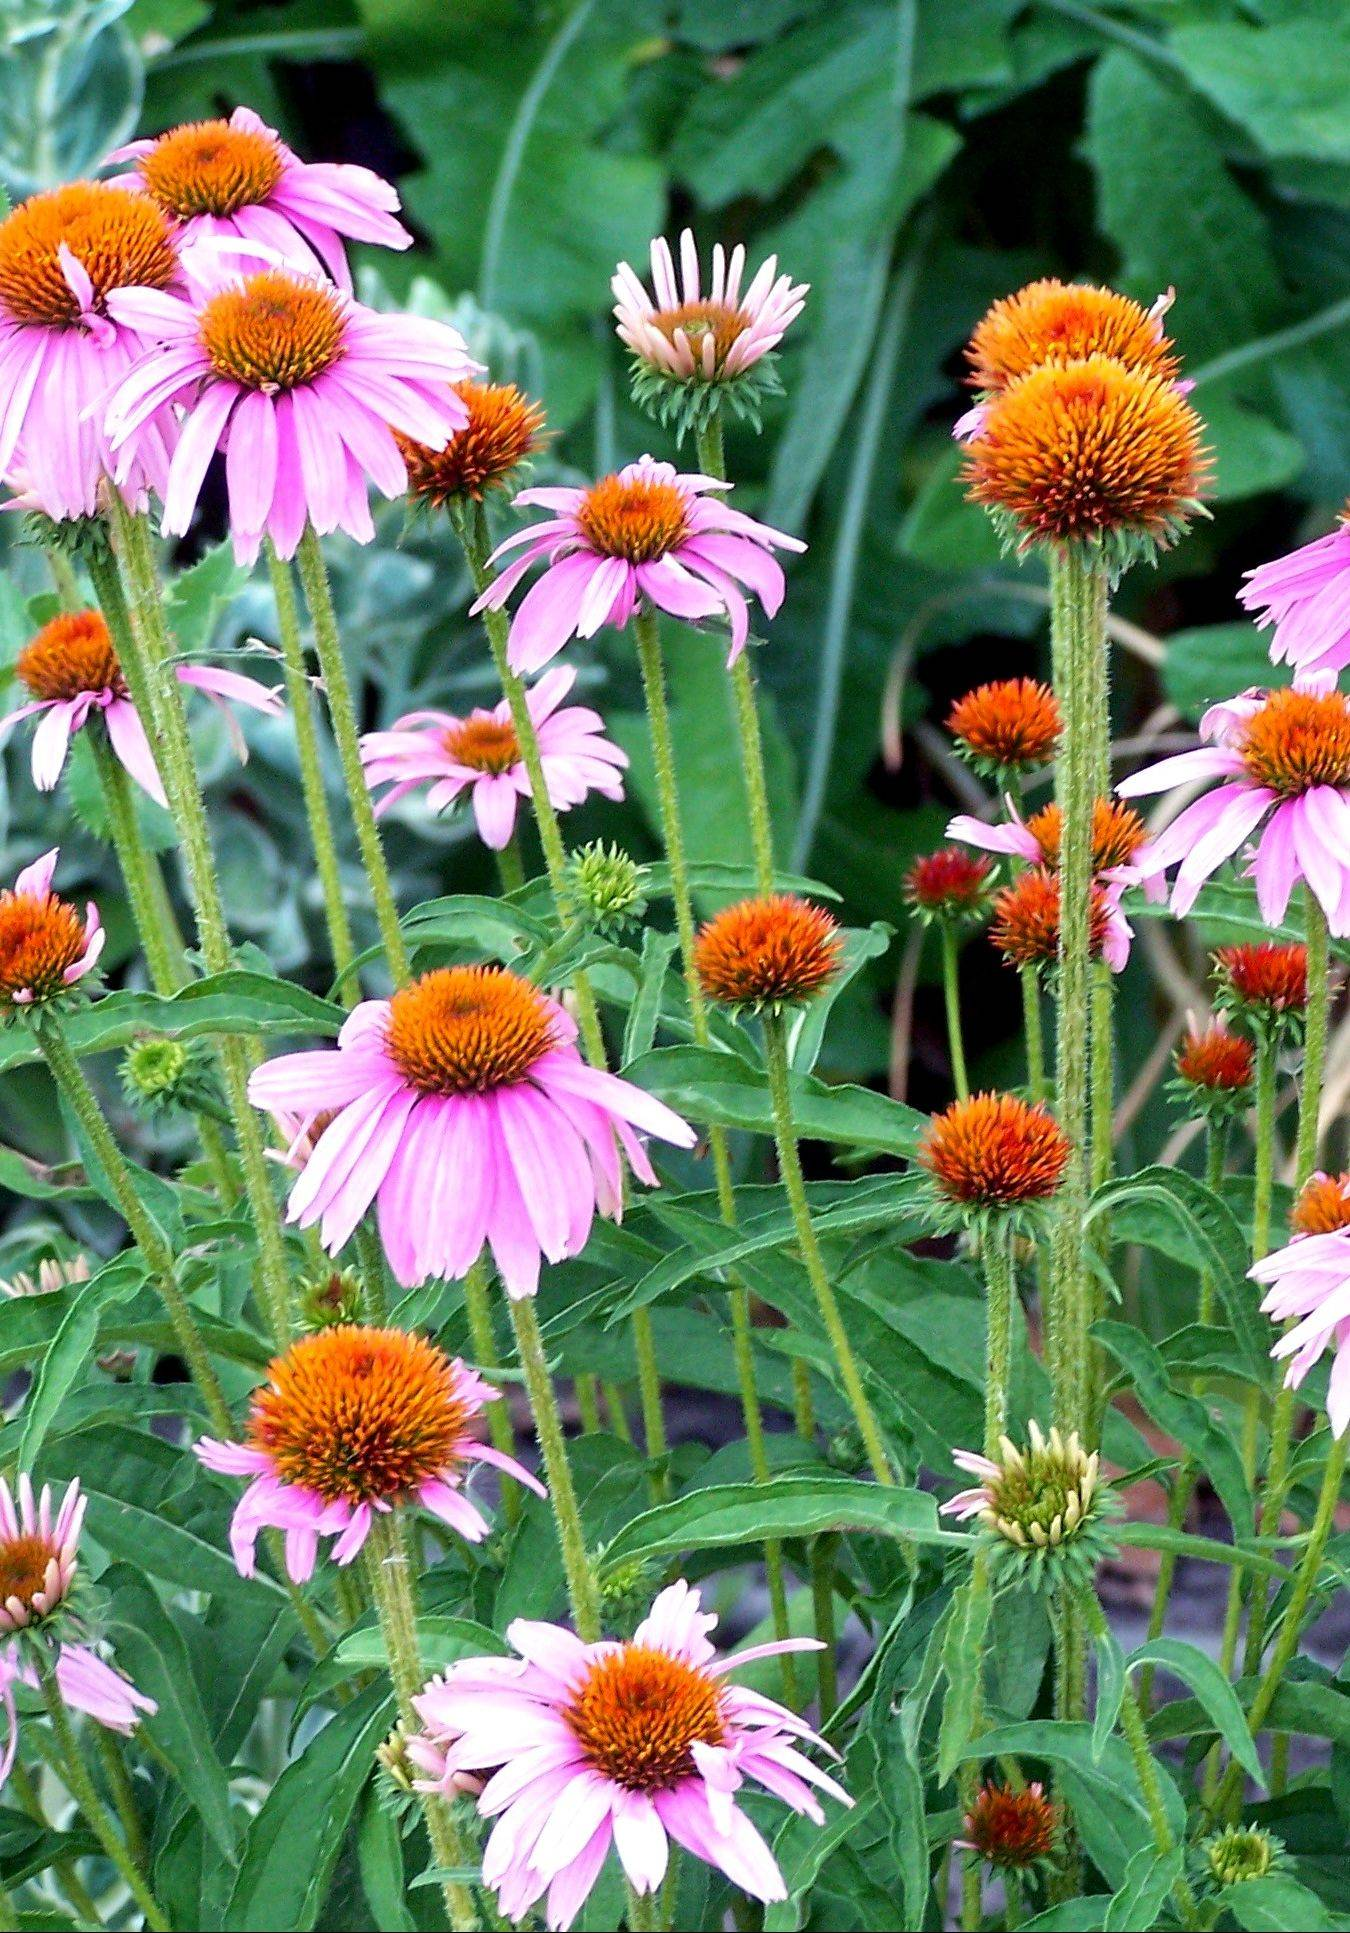 Leave seed heads on coneflowers for seed-eating birds.